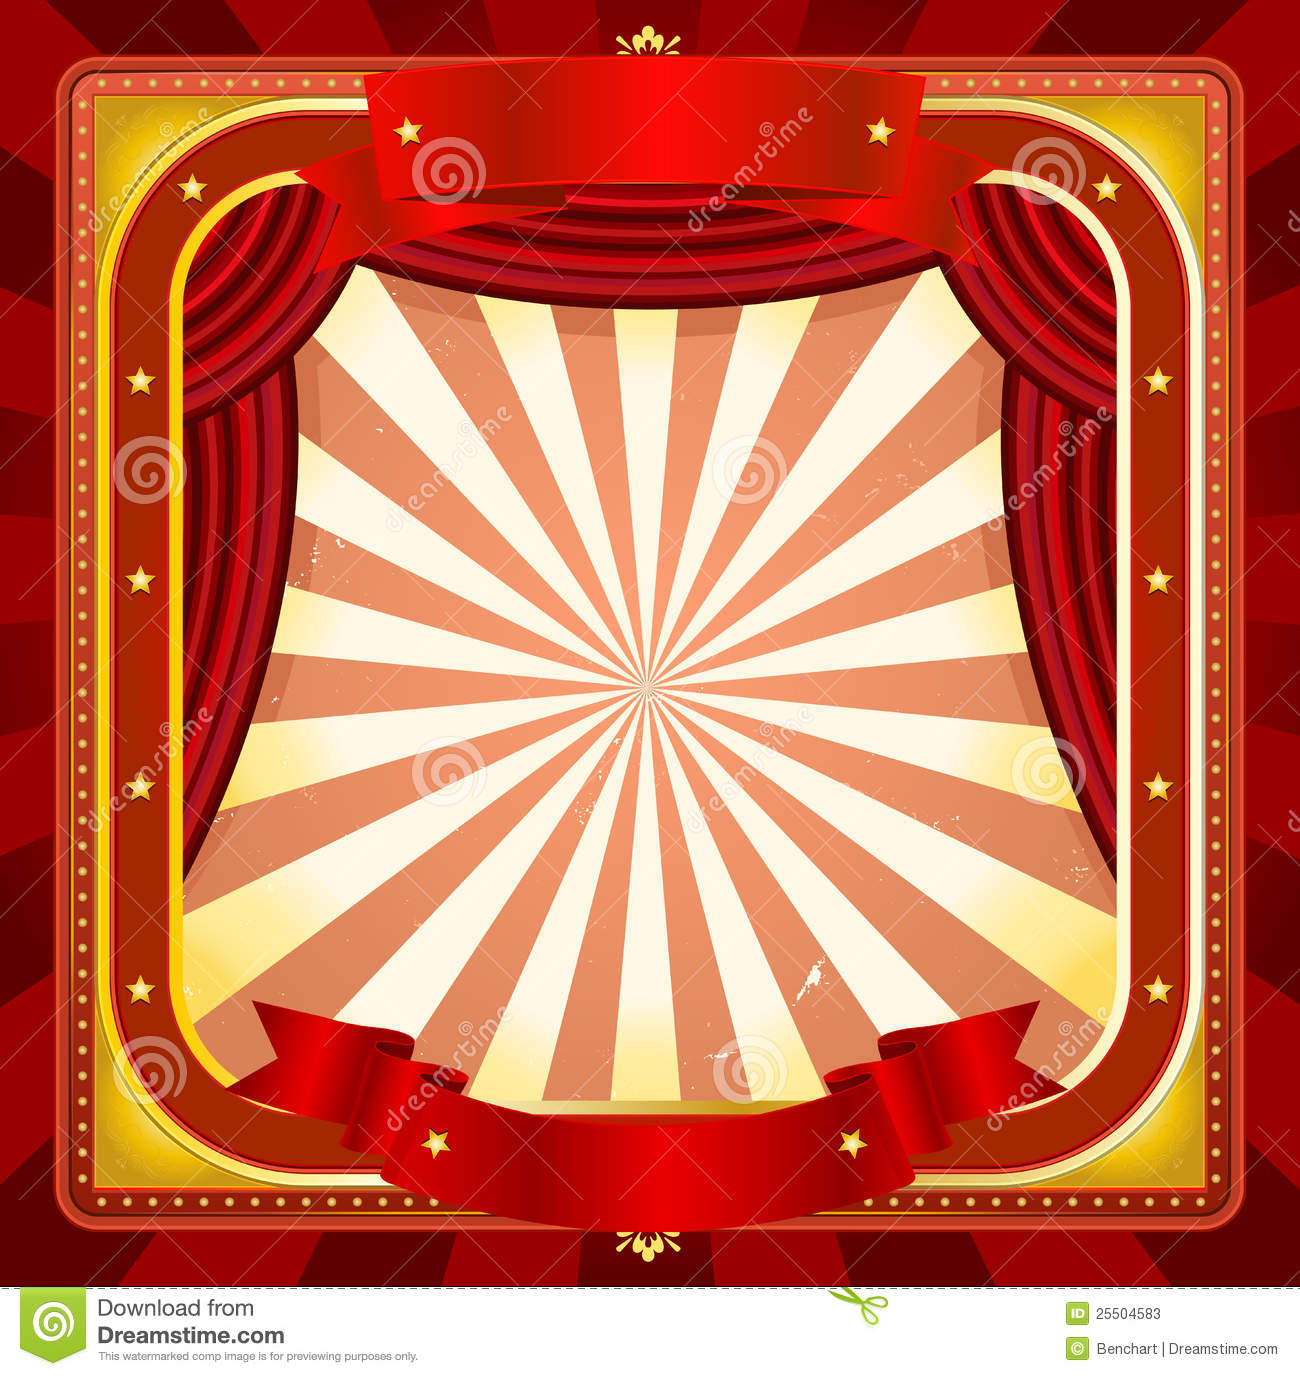 of a square circus frame background with banners, red curtains ...